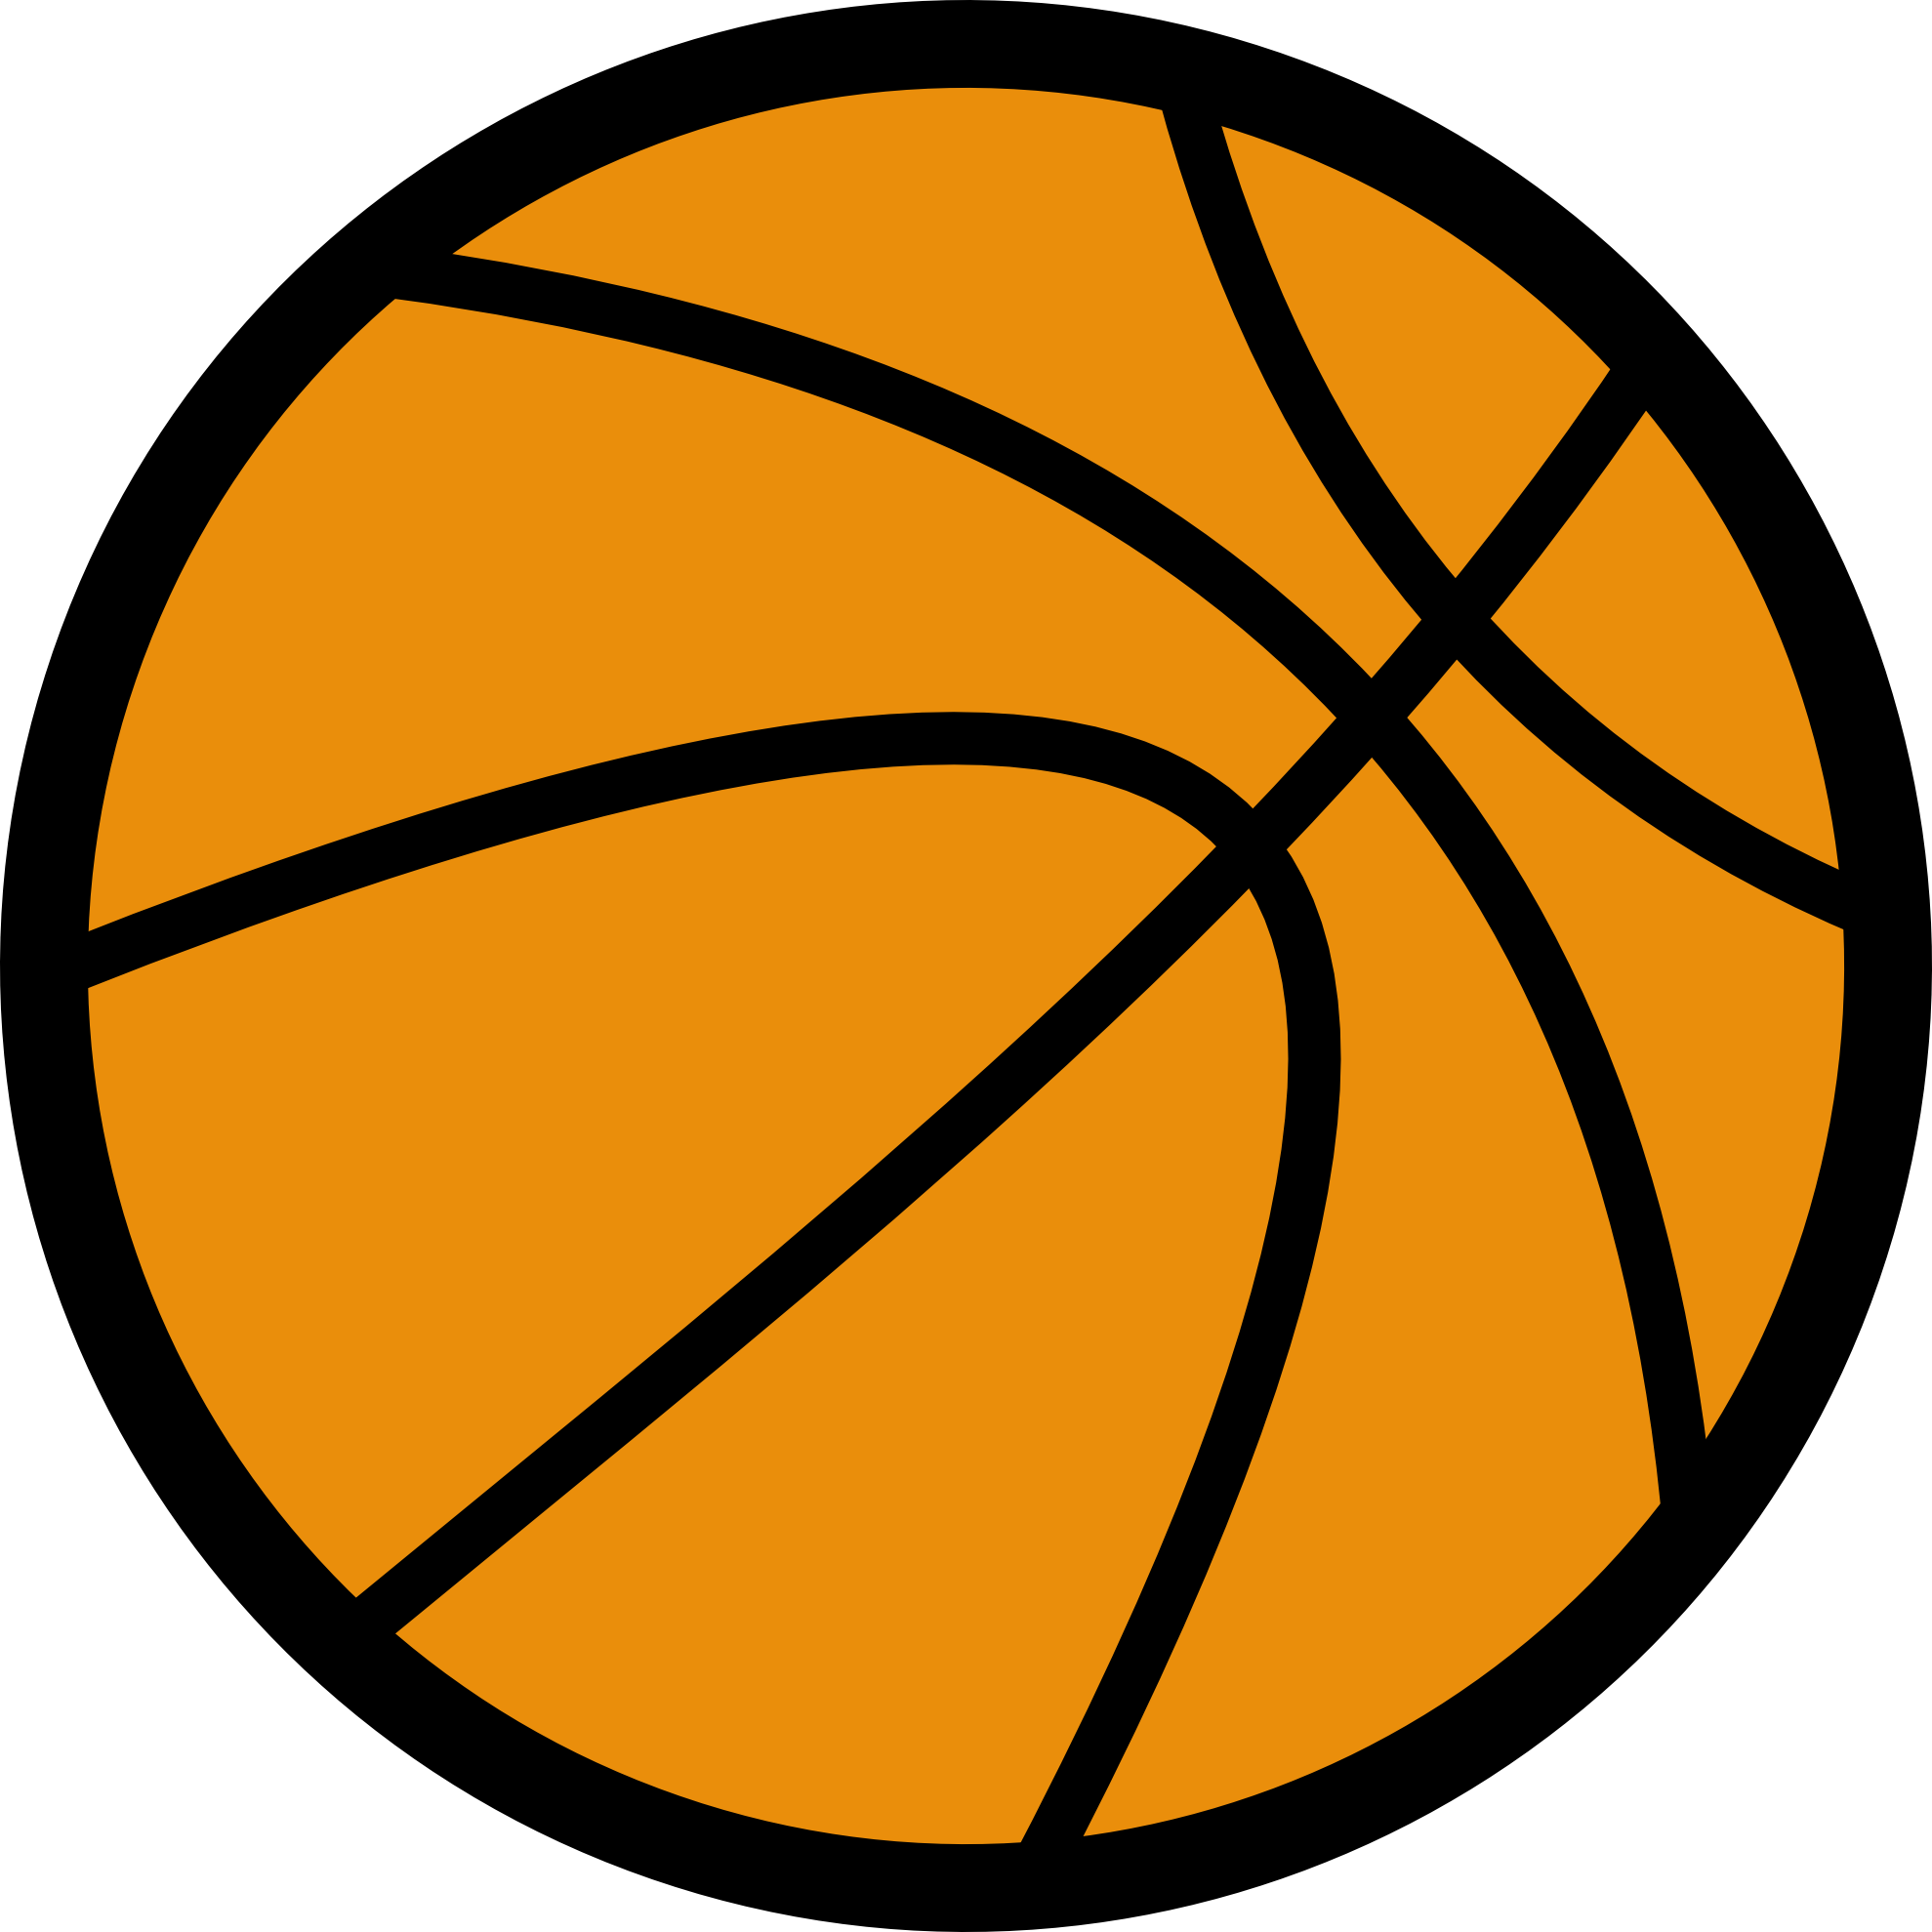 14 Basketball Vector Art Images